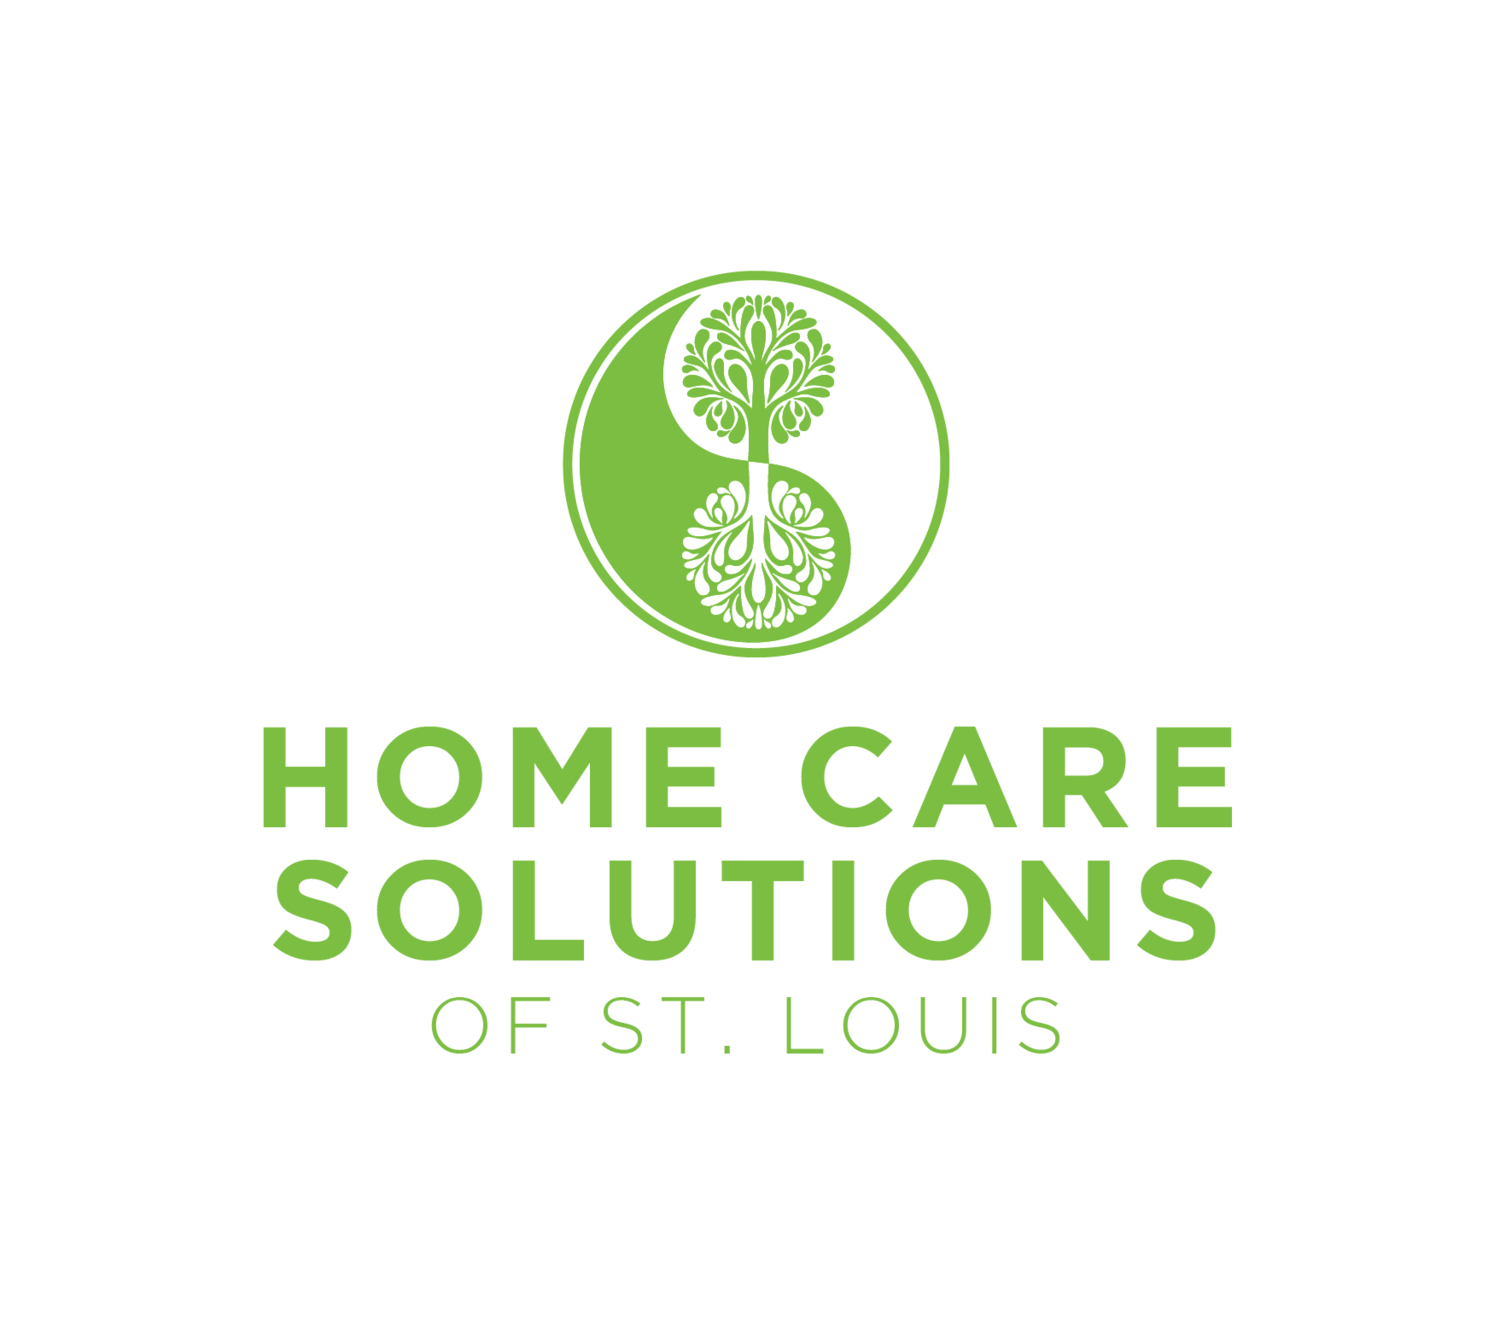 Home Care Solutions of St. Louis